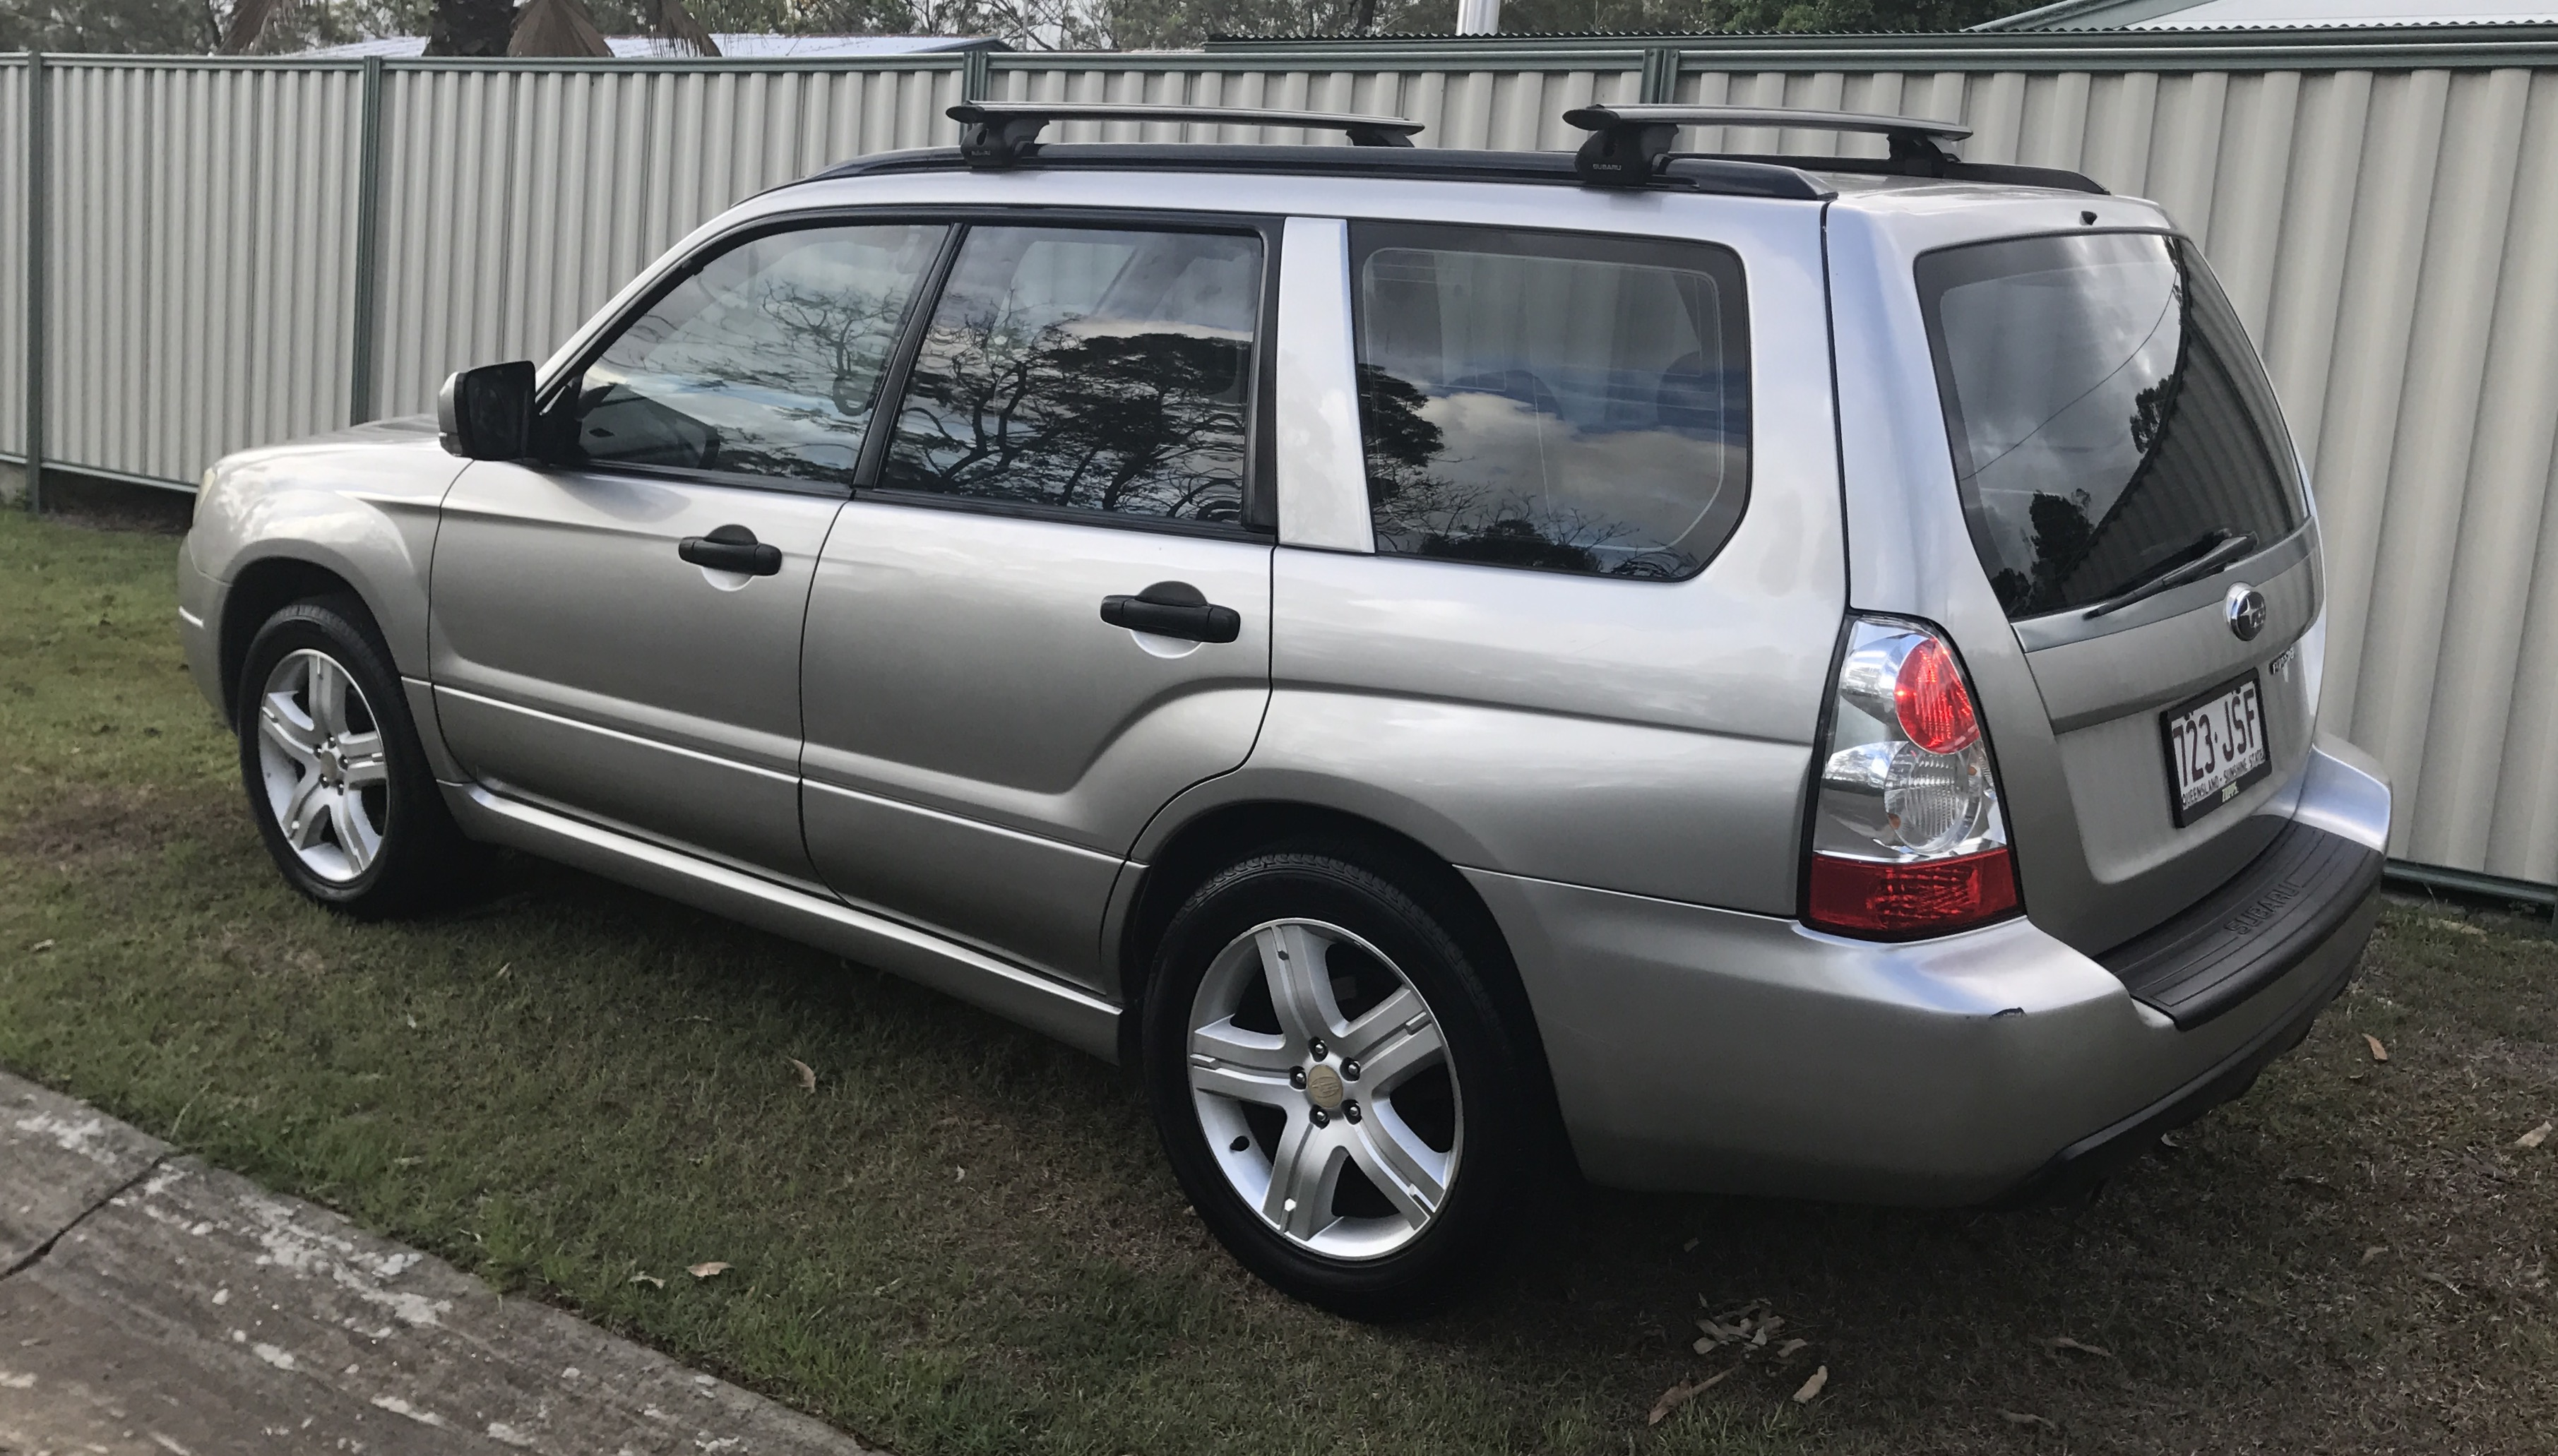 2006 subaru forester xt luxury my06 car sales qld gold. Black Bedroom Furniture Sets. Home Design Ideas